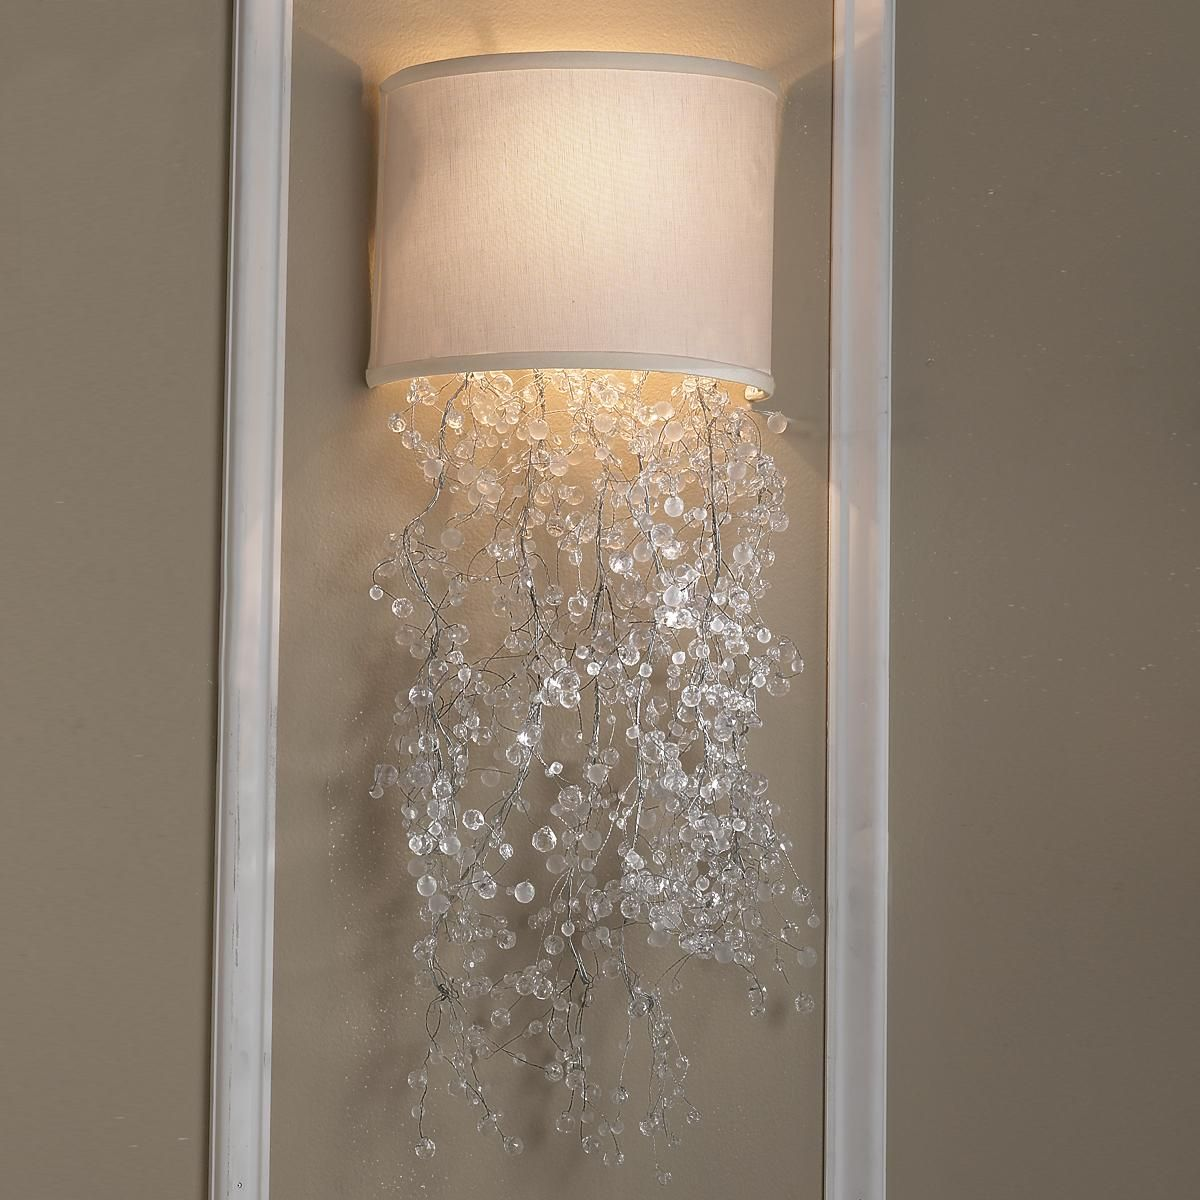 Dripping Crystal Shade Sconce Sconces Crystal Sconce Decor